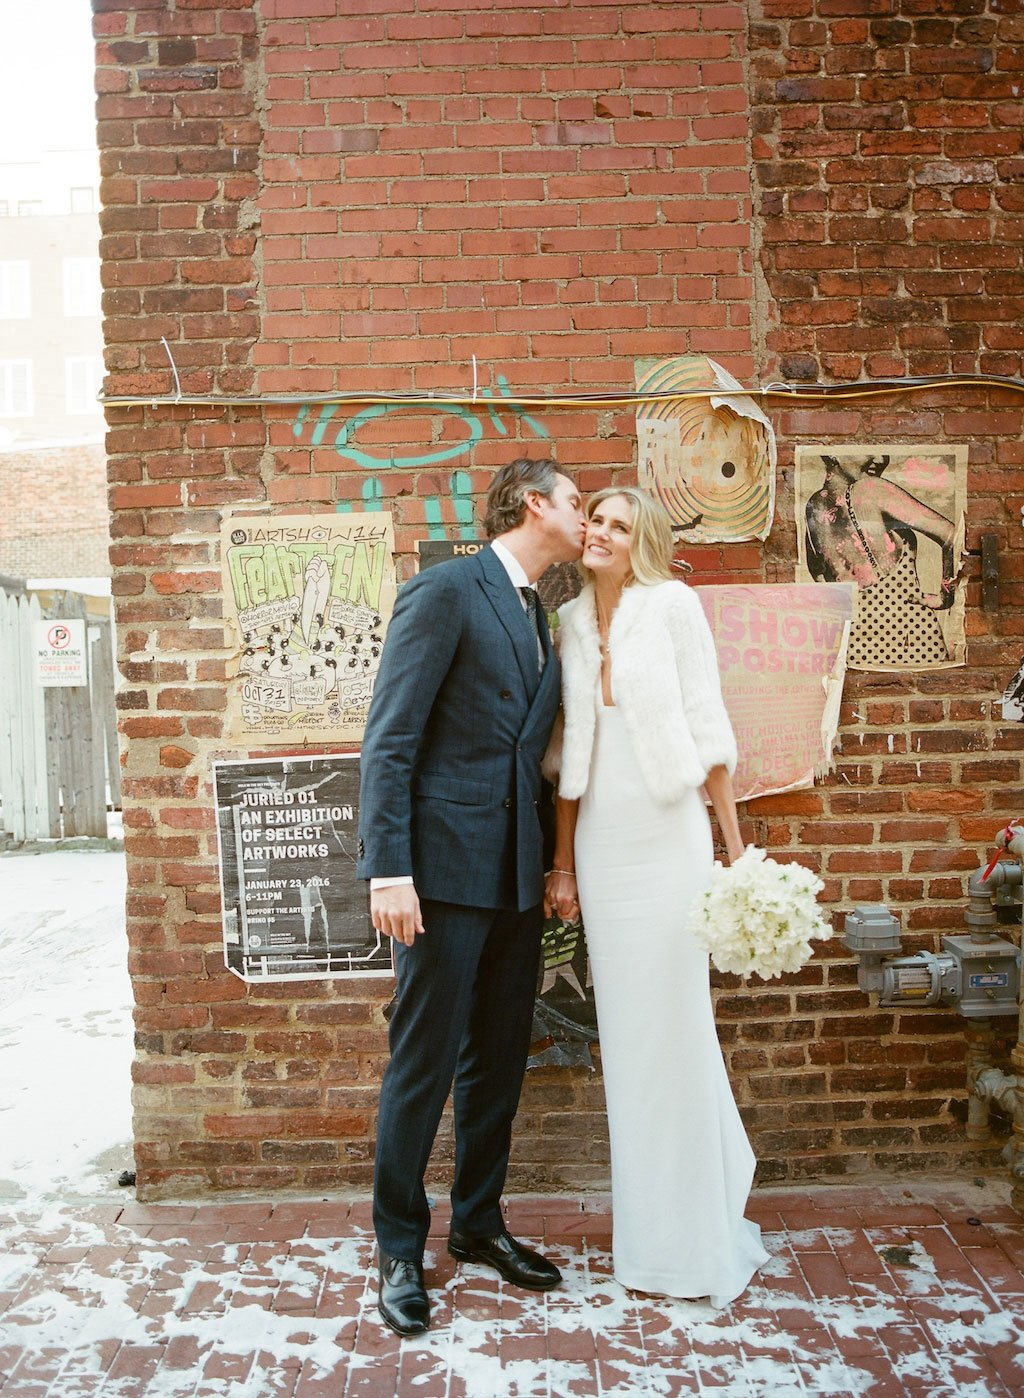 12-9-16-woodland-winter-urban-long-view-gallery-dc-wedding-6